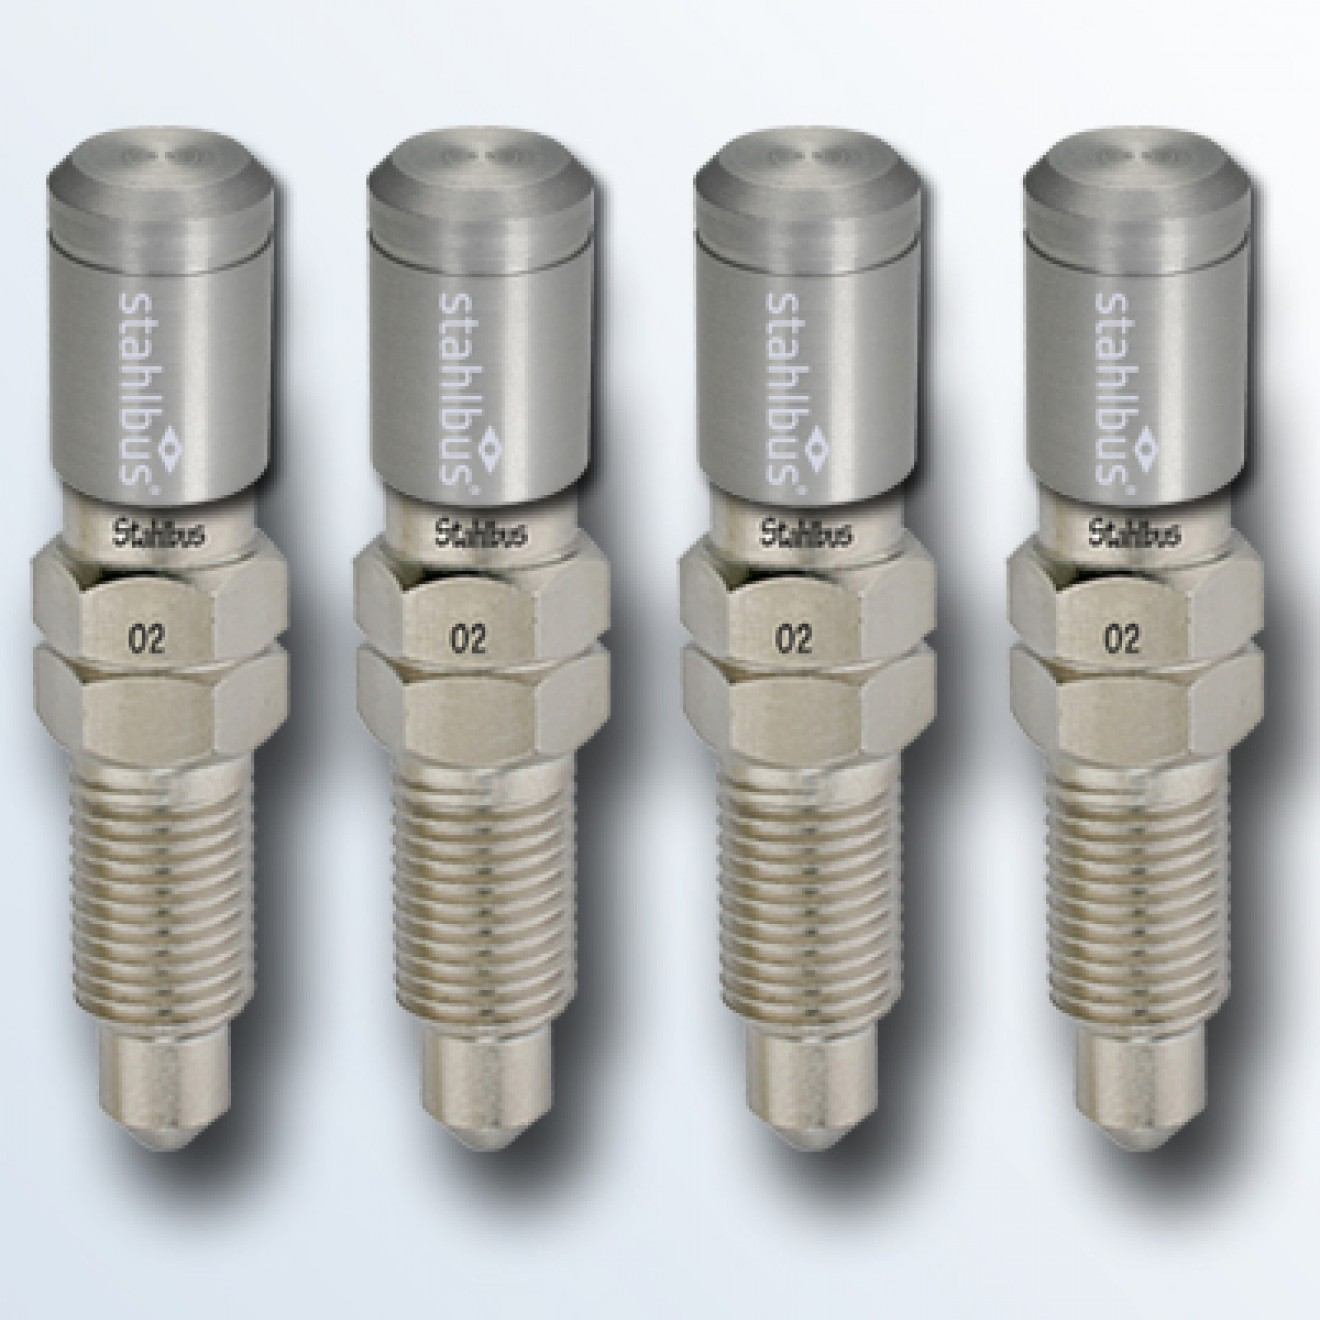 4-piece set stahlbus Bleeder valve 3/8 inches-24UNFx22mm (L), steel with natural dust cap